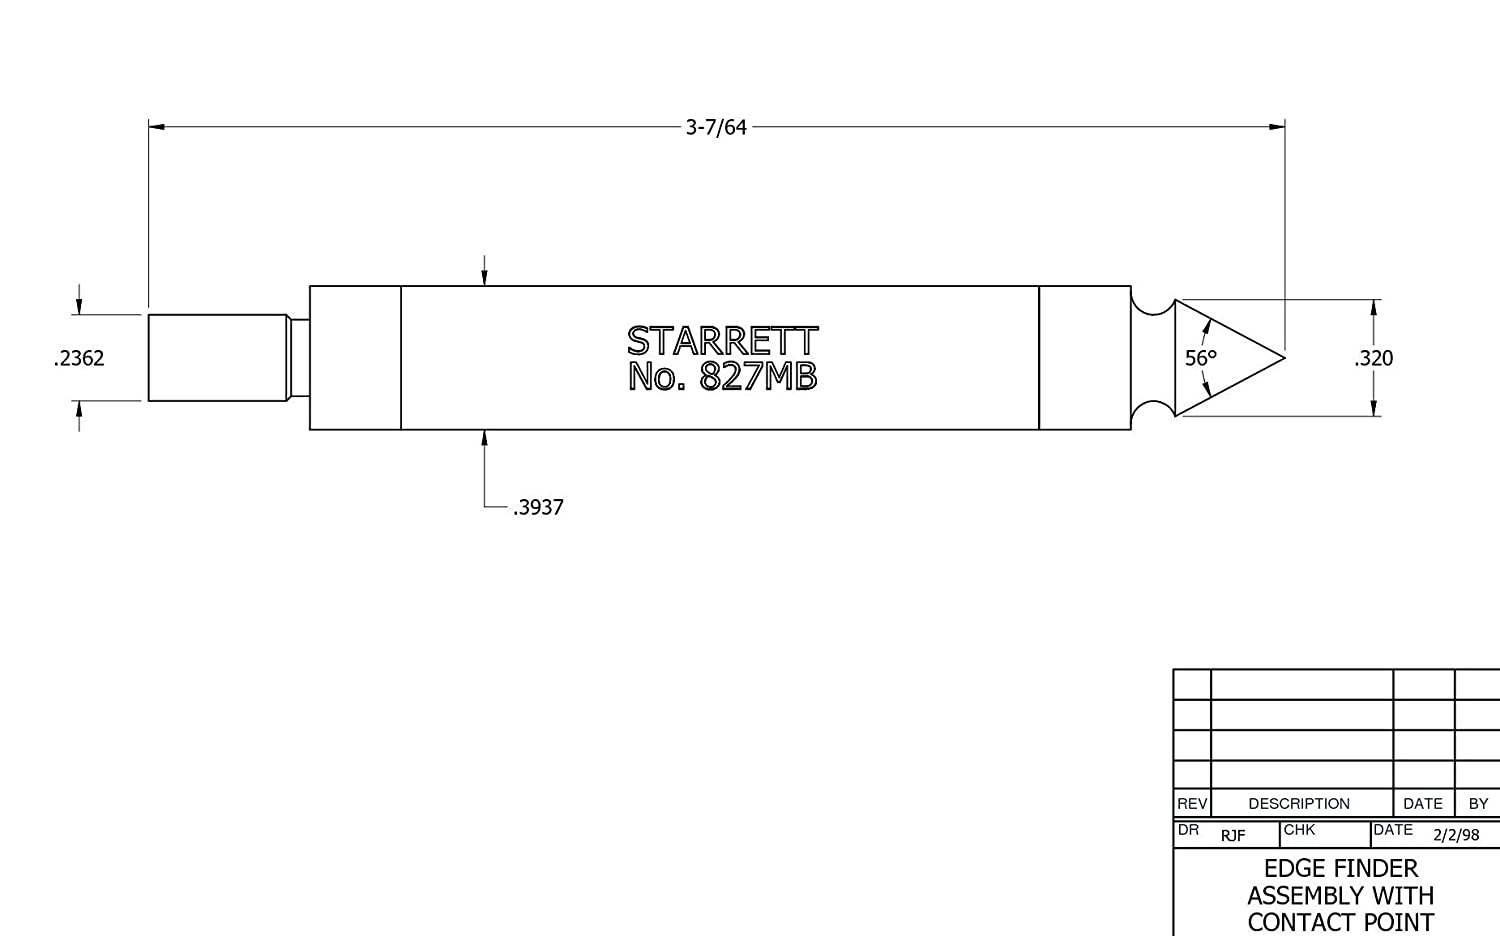 With Pointed Contact 0.2 Contact Diameter Starrett 827B Edge Finders 0.5 Body Diameter Double End